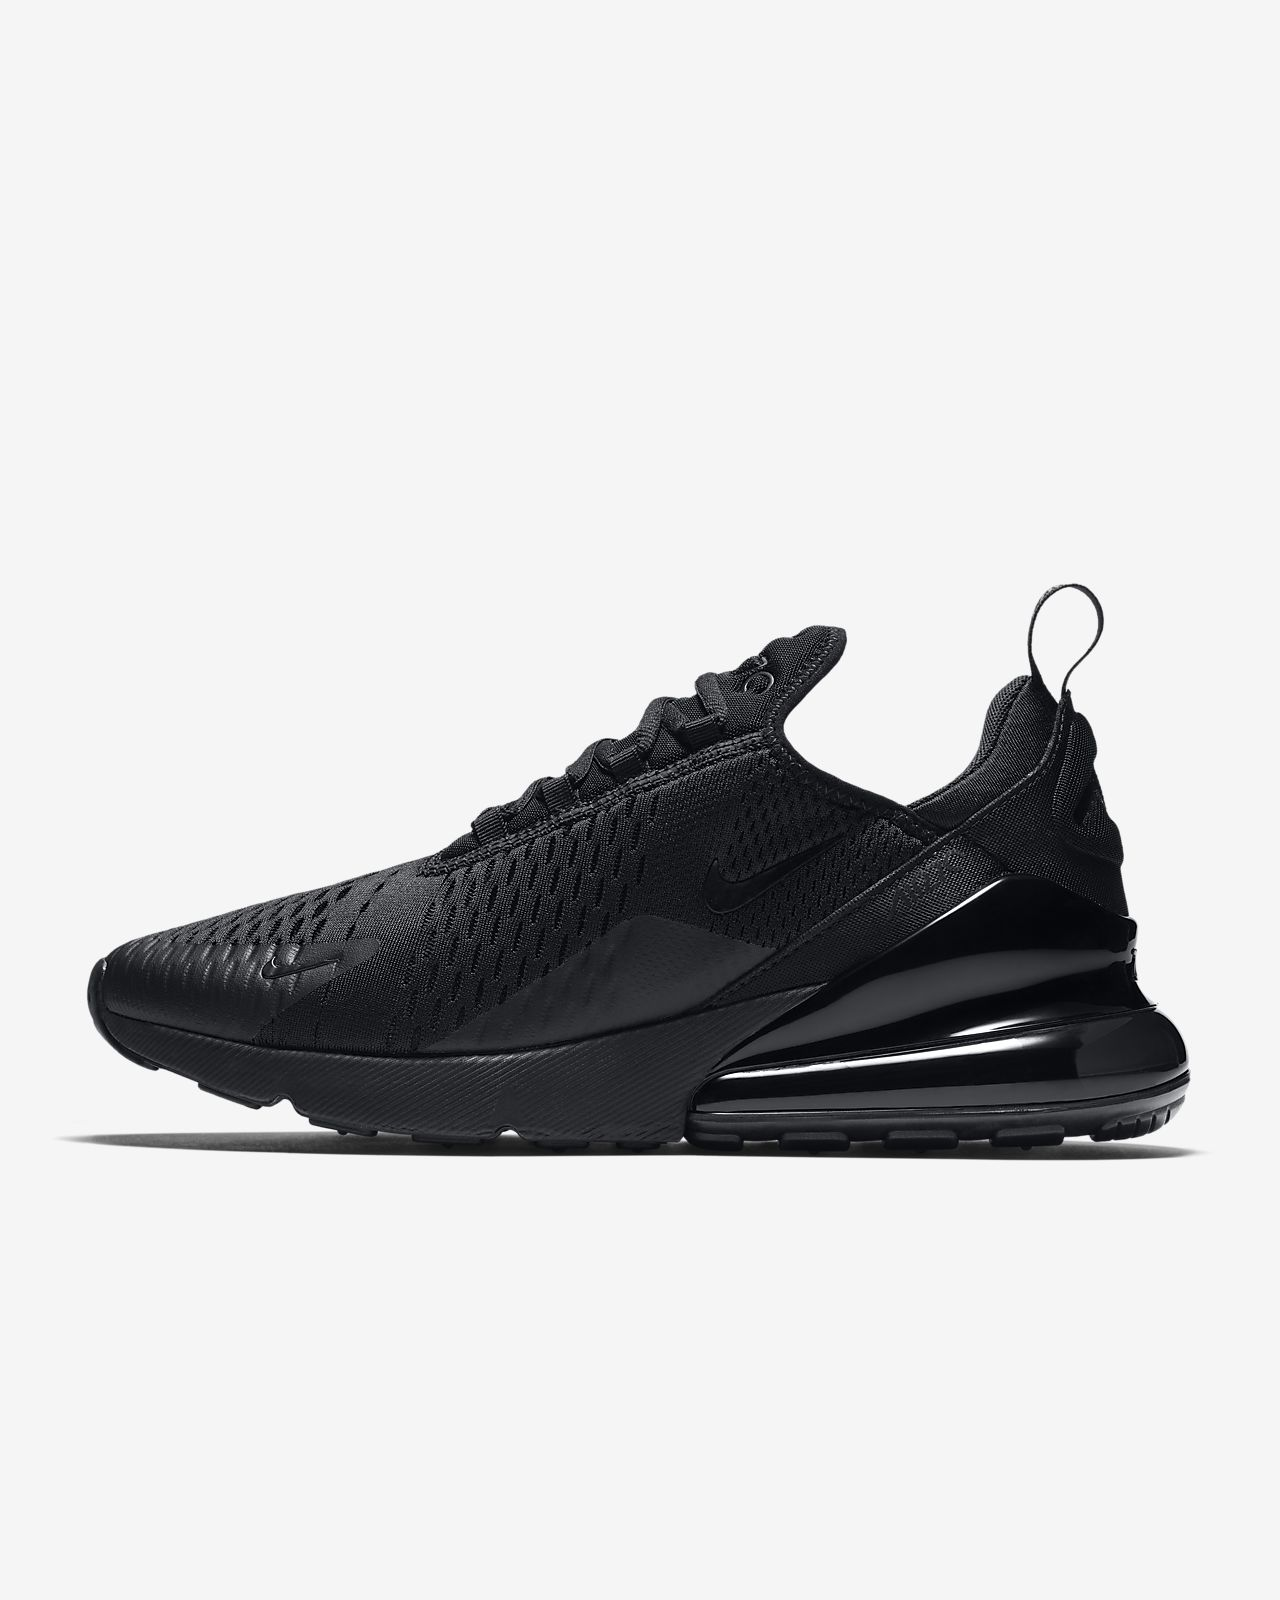 lowest price b80b6 ca8a7 ... Nike Air Max 270 Men s Shoe